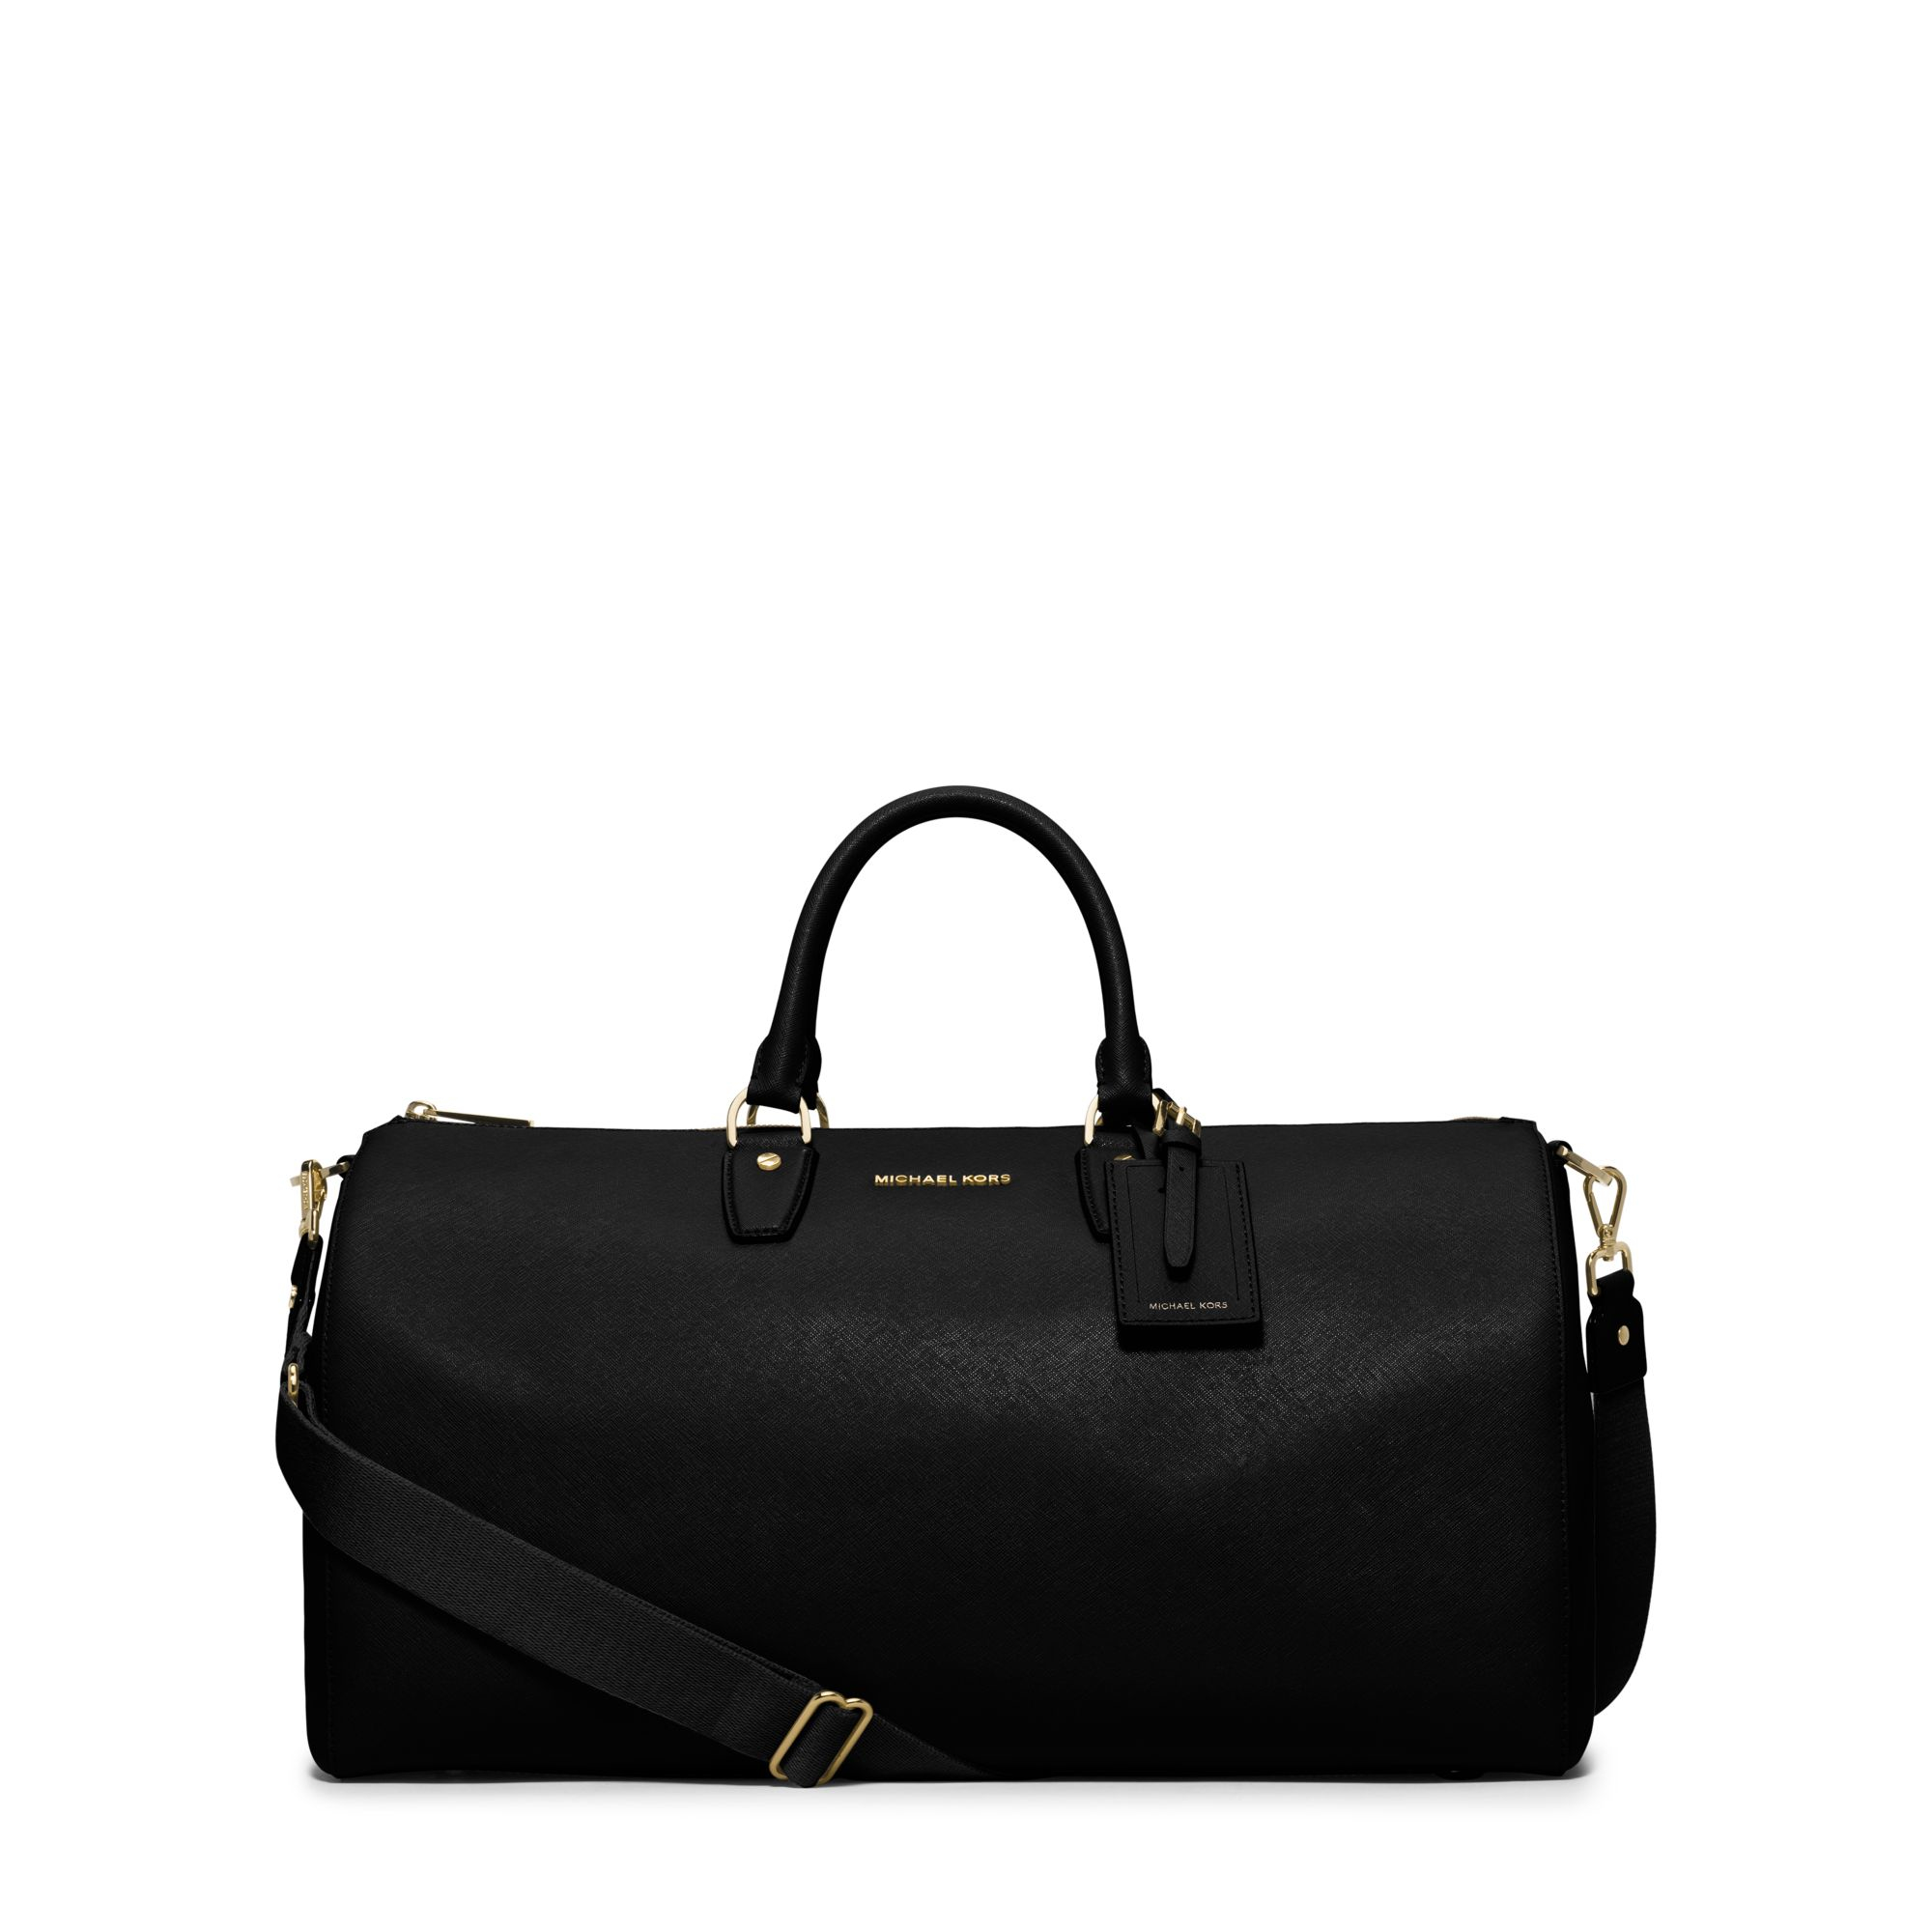 Michael kors Jet Set Large Leather Weekender in Black | Lyst